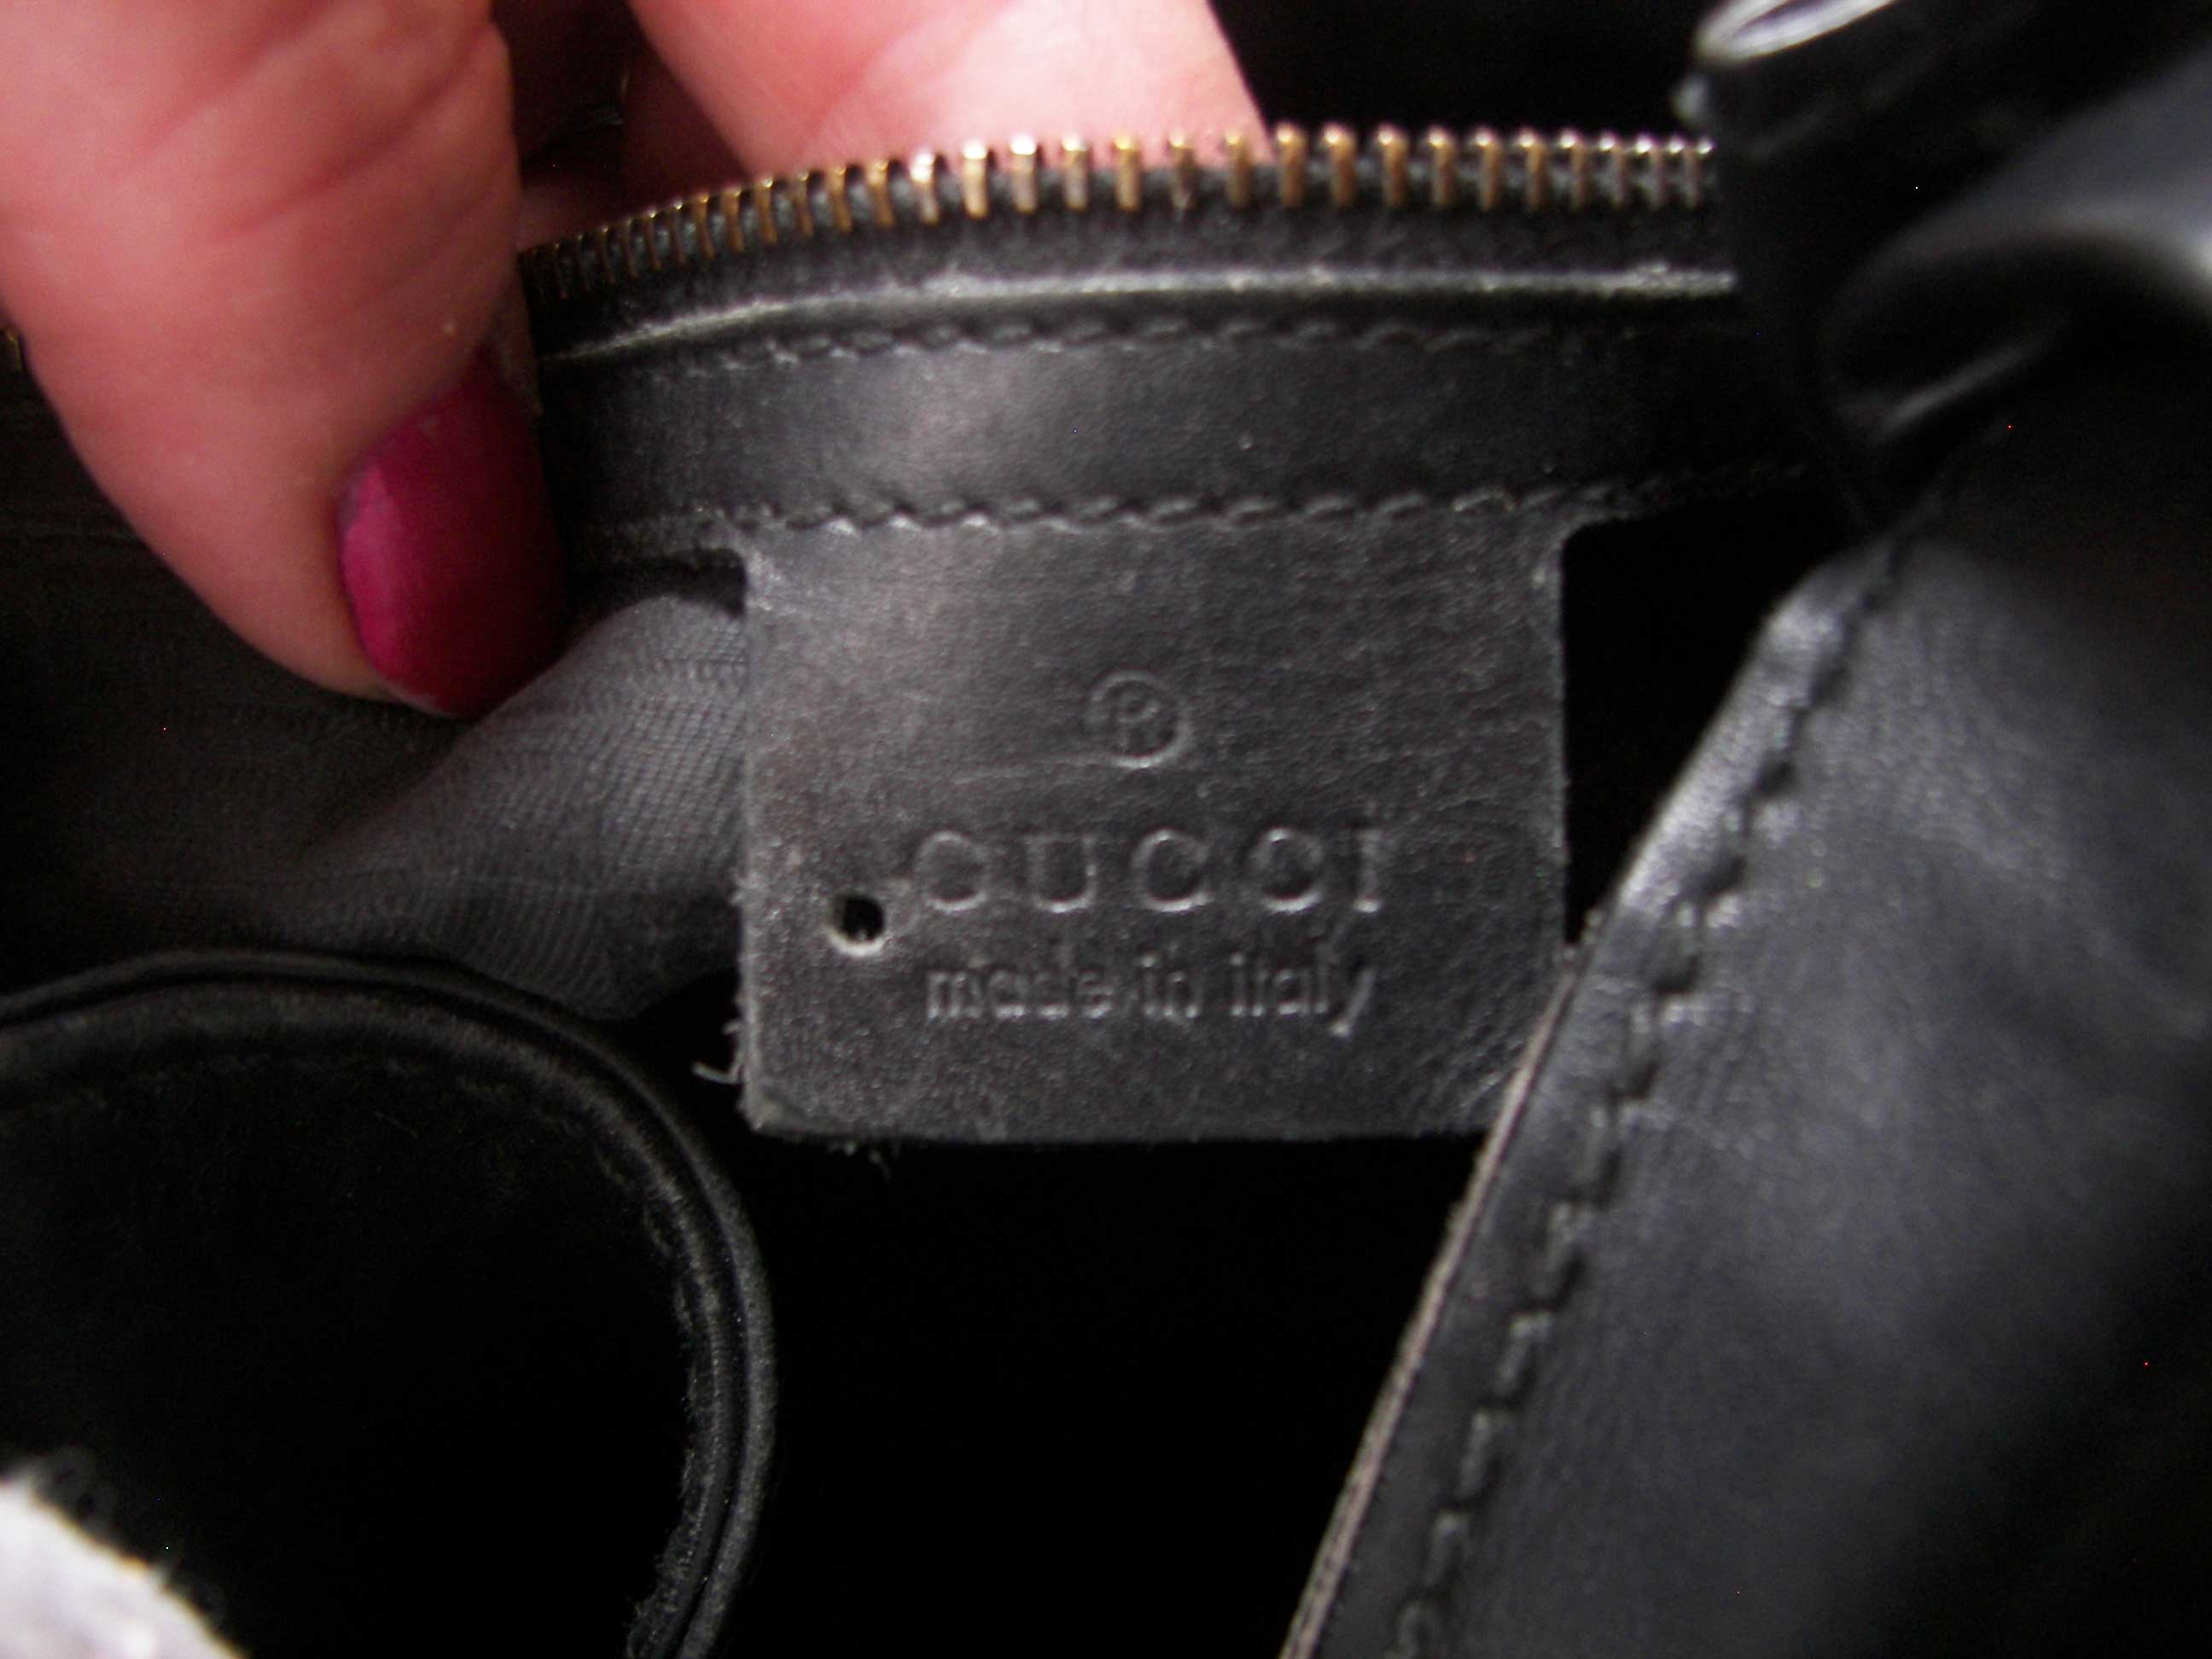 Gucci outlet bag with a hole punched through the leather tag